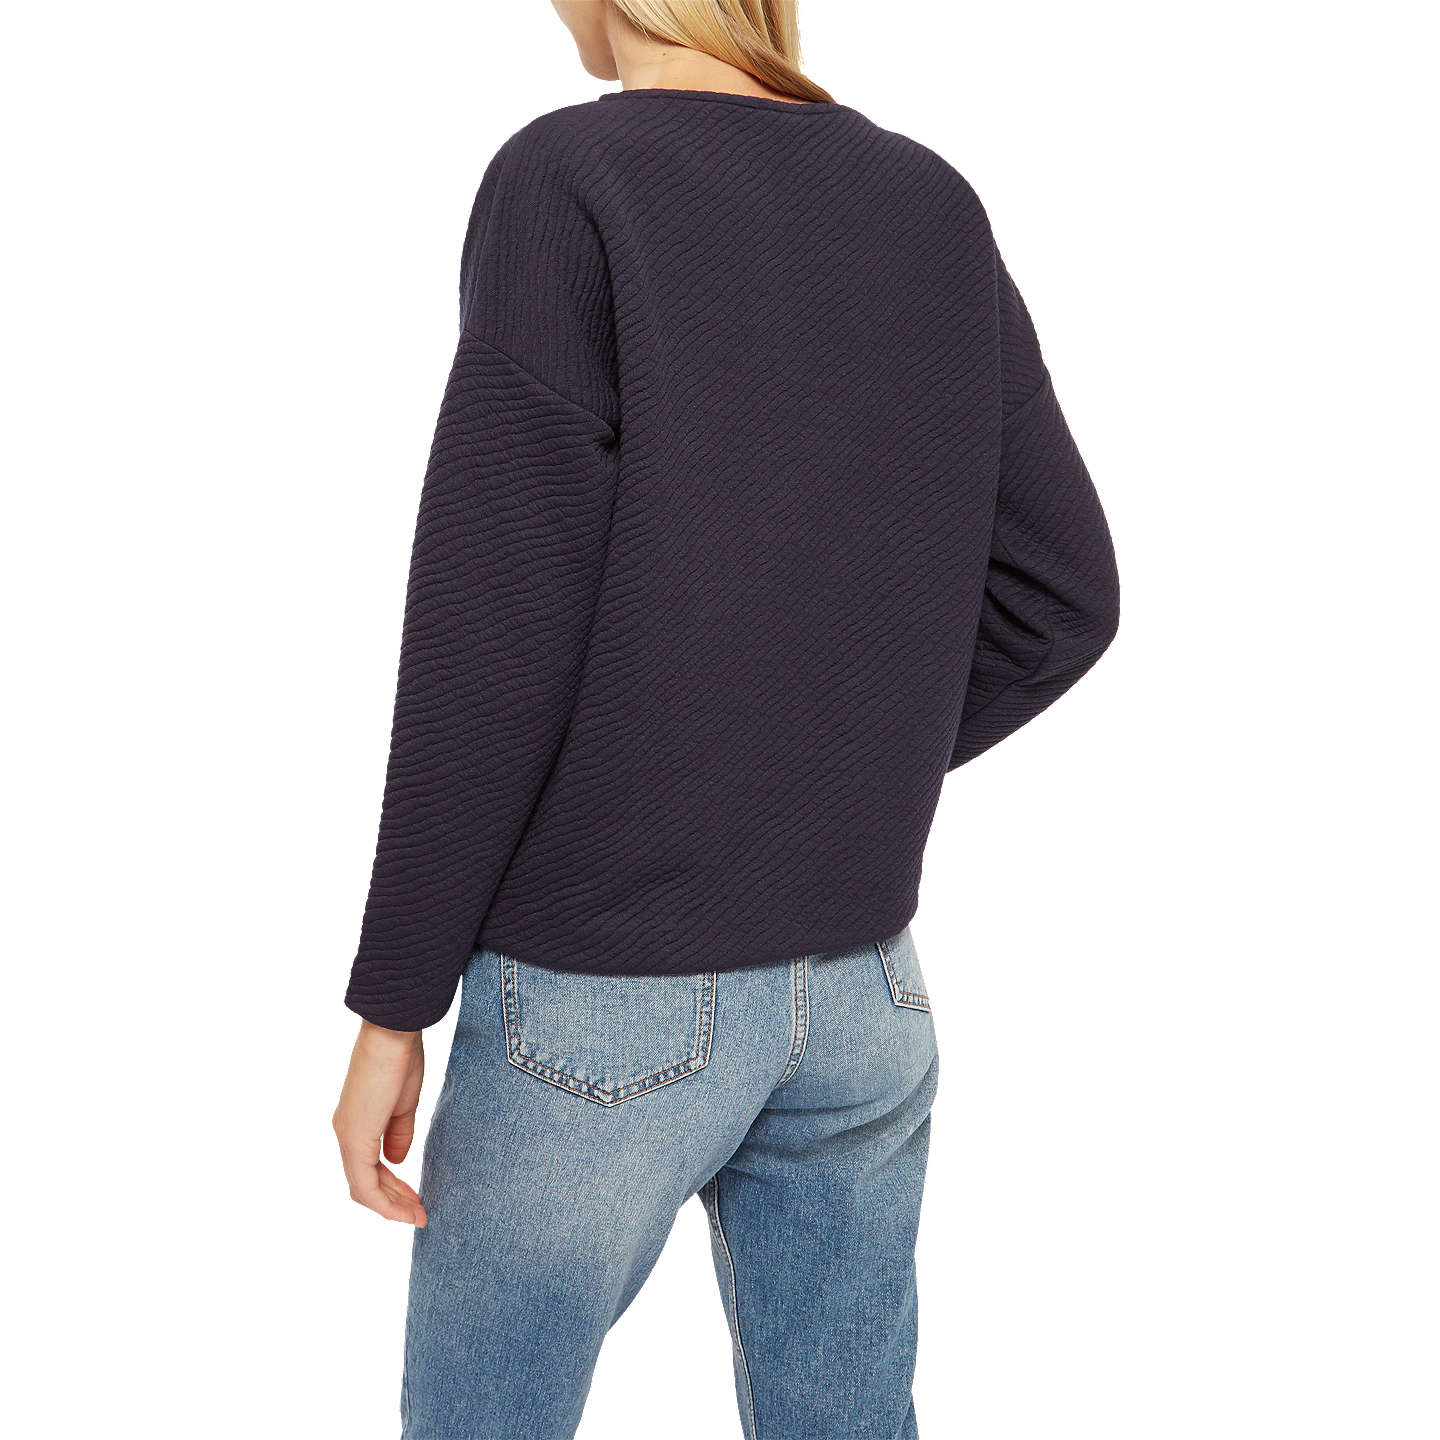 BuyJaeger Padded Jacquard Jumper, Midnight, XS Online at johnlewis.com